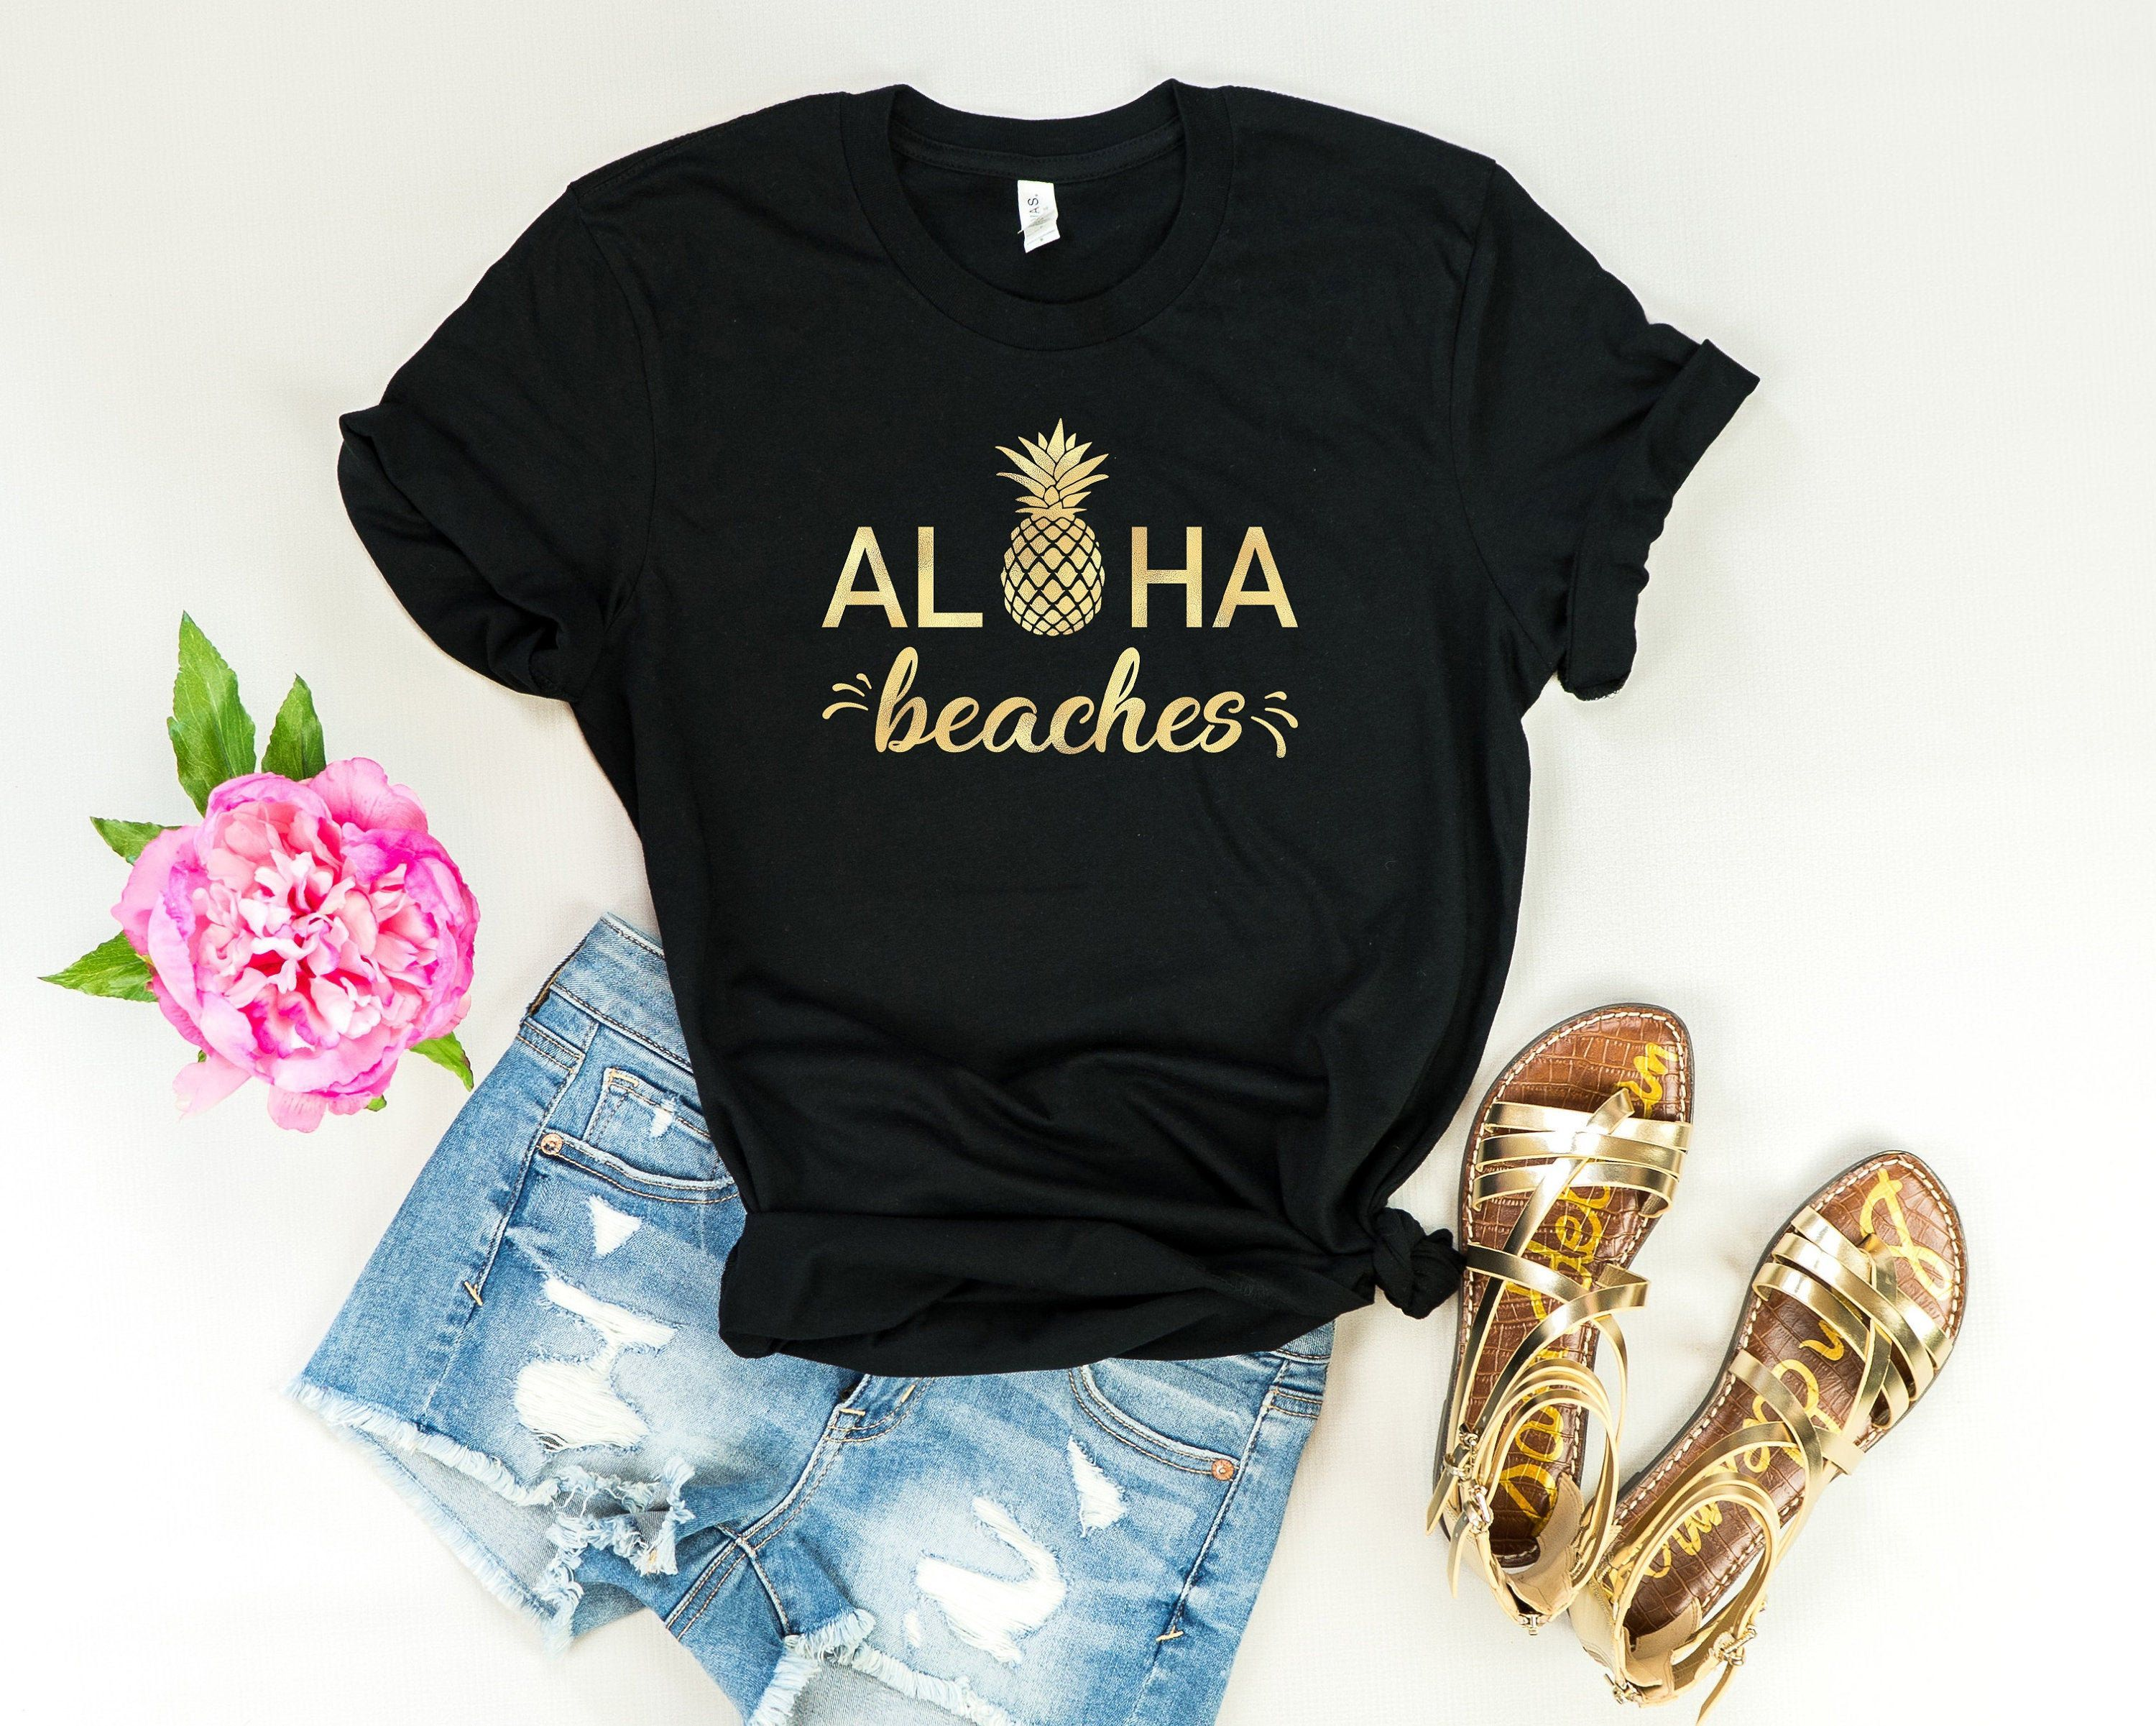 Aloha Beaches, Summer shirt, vacation shirt, beach cover up, beach shirt, beach vacation shirt, honeymoon shirt, vacay mode, Pineapple shirt #beachhoneymoonclothes Aloha Beaches, Summer shirt, vacation shirt, beach cover up, beach shirt, beach vacation shirt, honeymoon shirt, vacay mode, Pineapple shirt #beachhoneymoonclothes